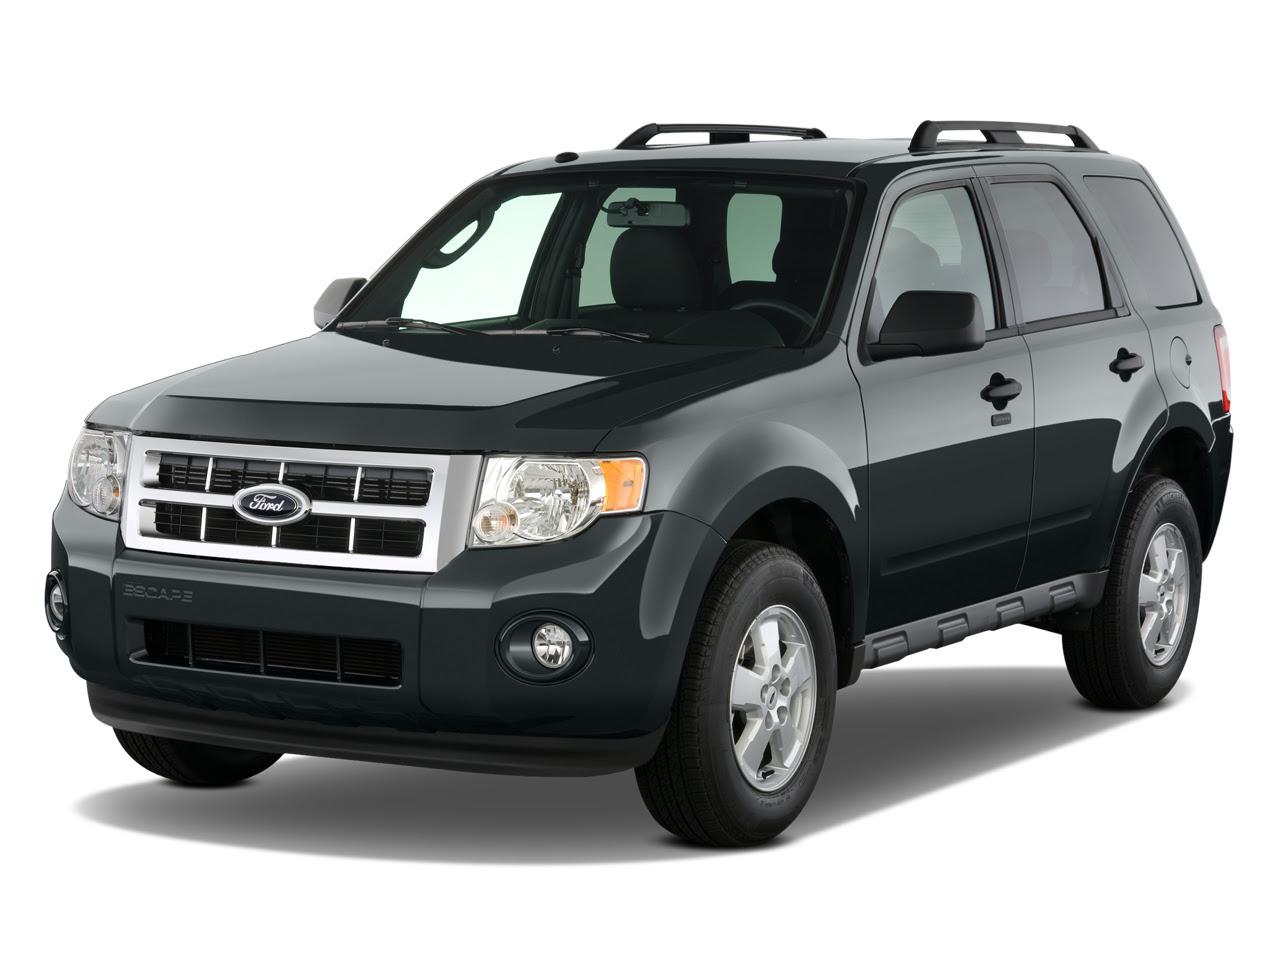 Ford Escape Xlt 2010 Reviews